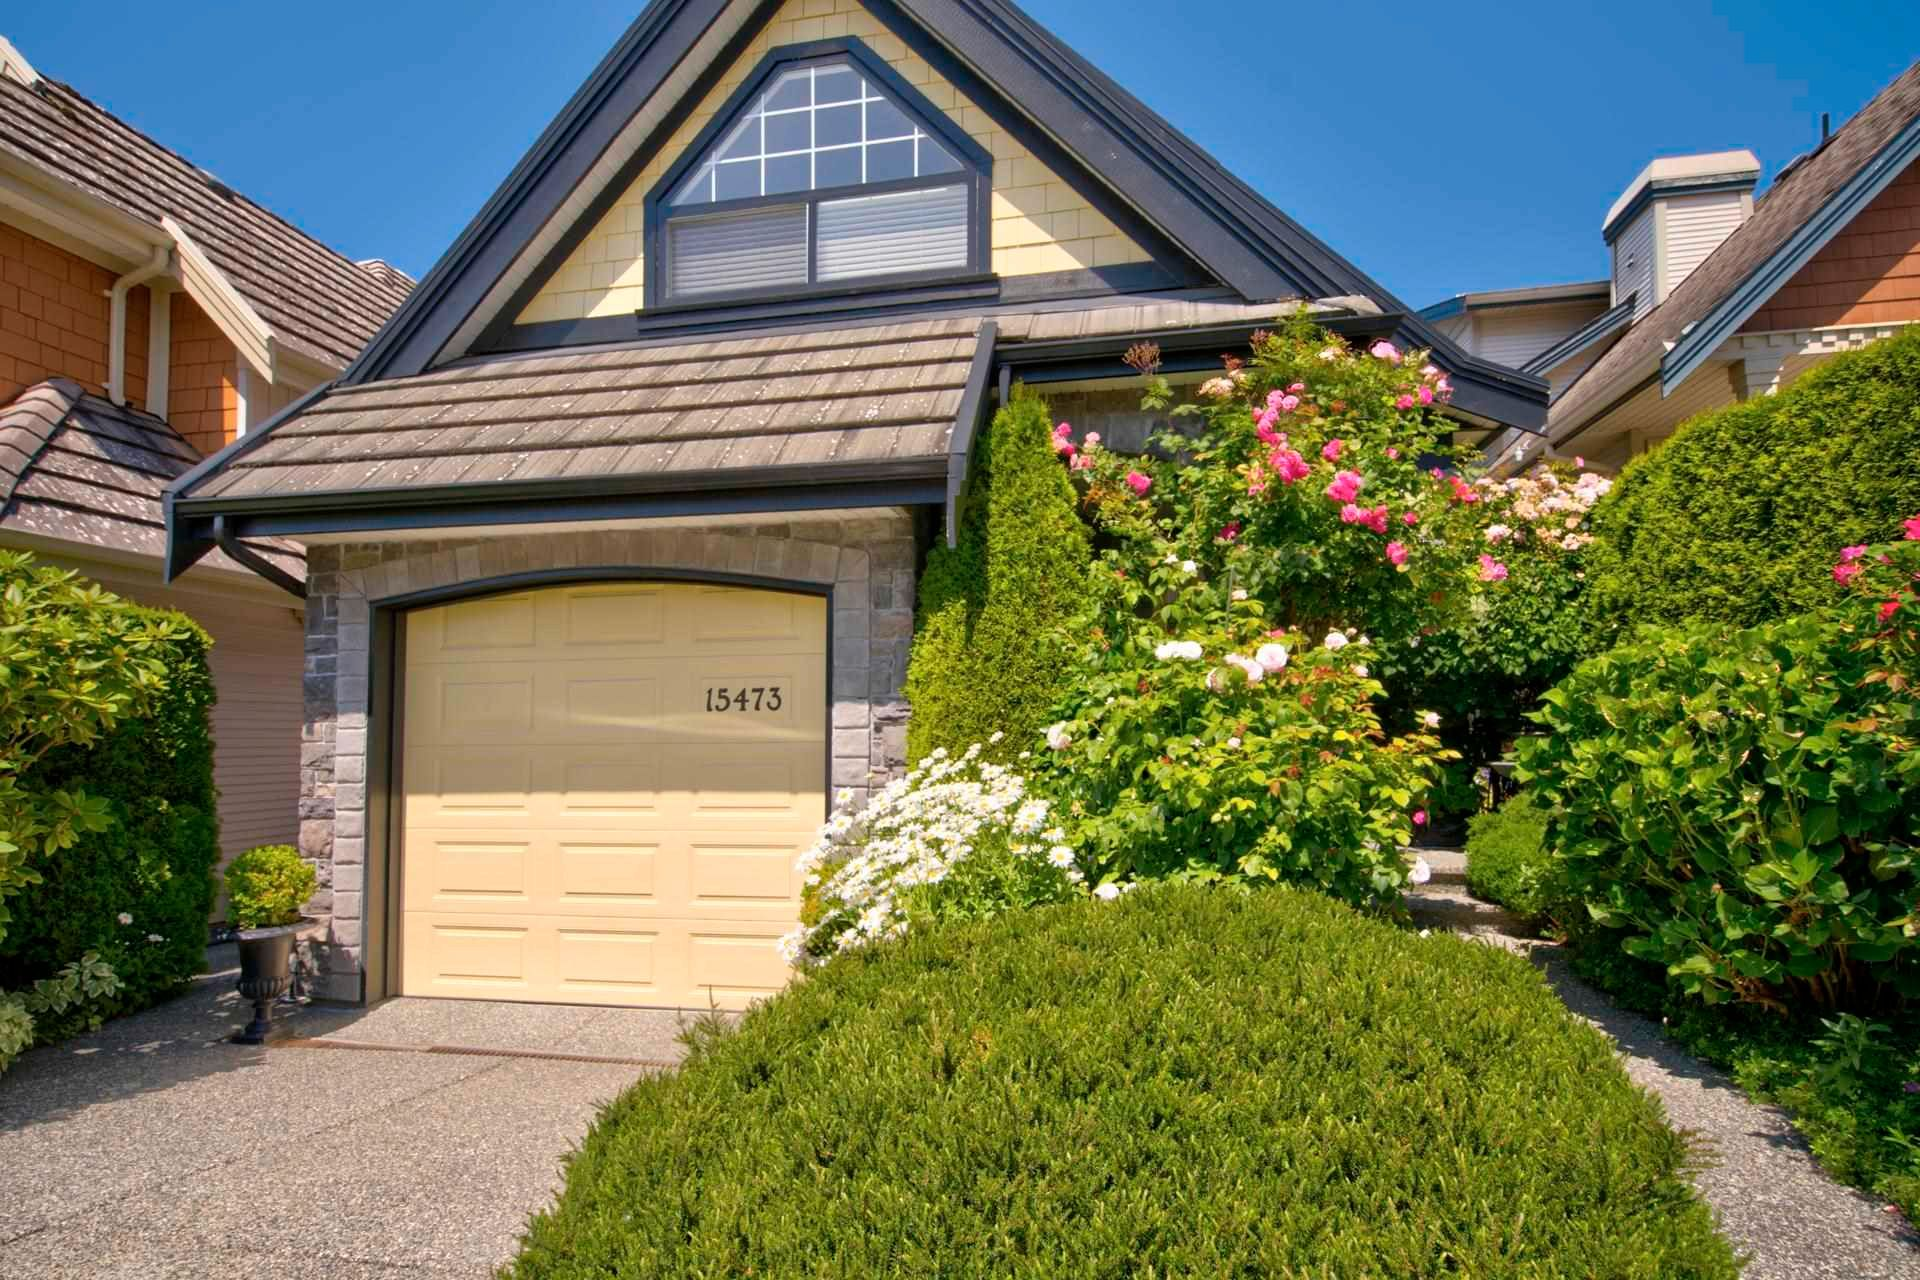 Main Photo: 15473 THRIFT Avenue: White Rock House for sale (South Surrey White Rock)  : MLS®# R2599524